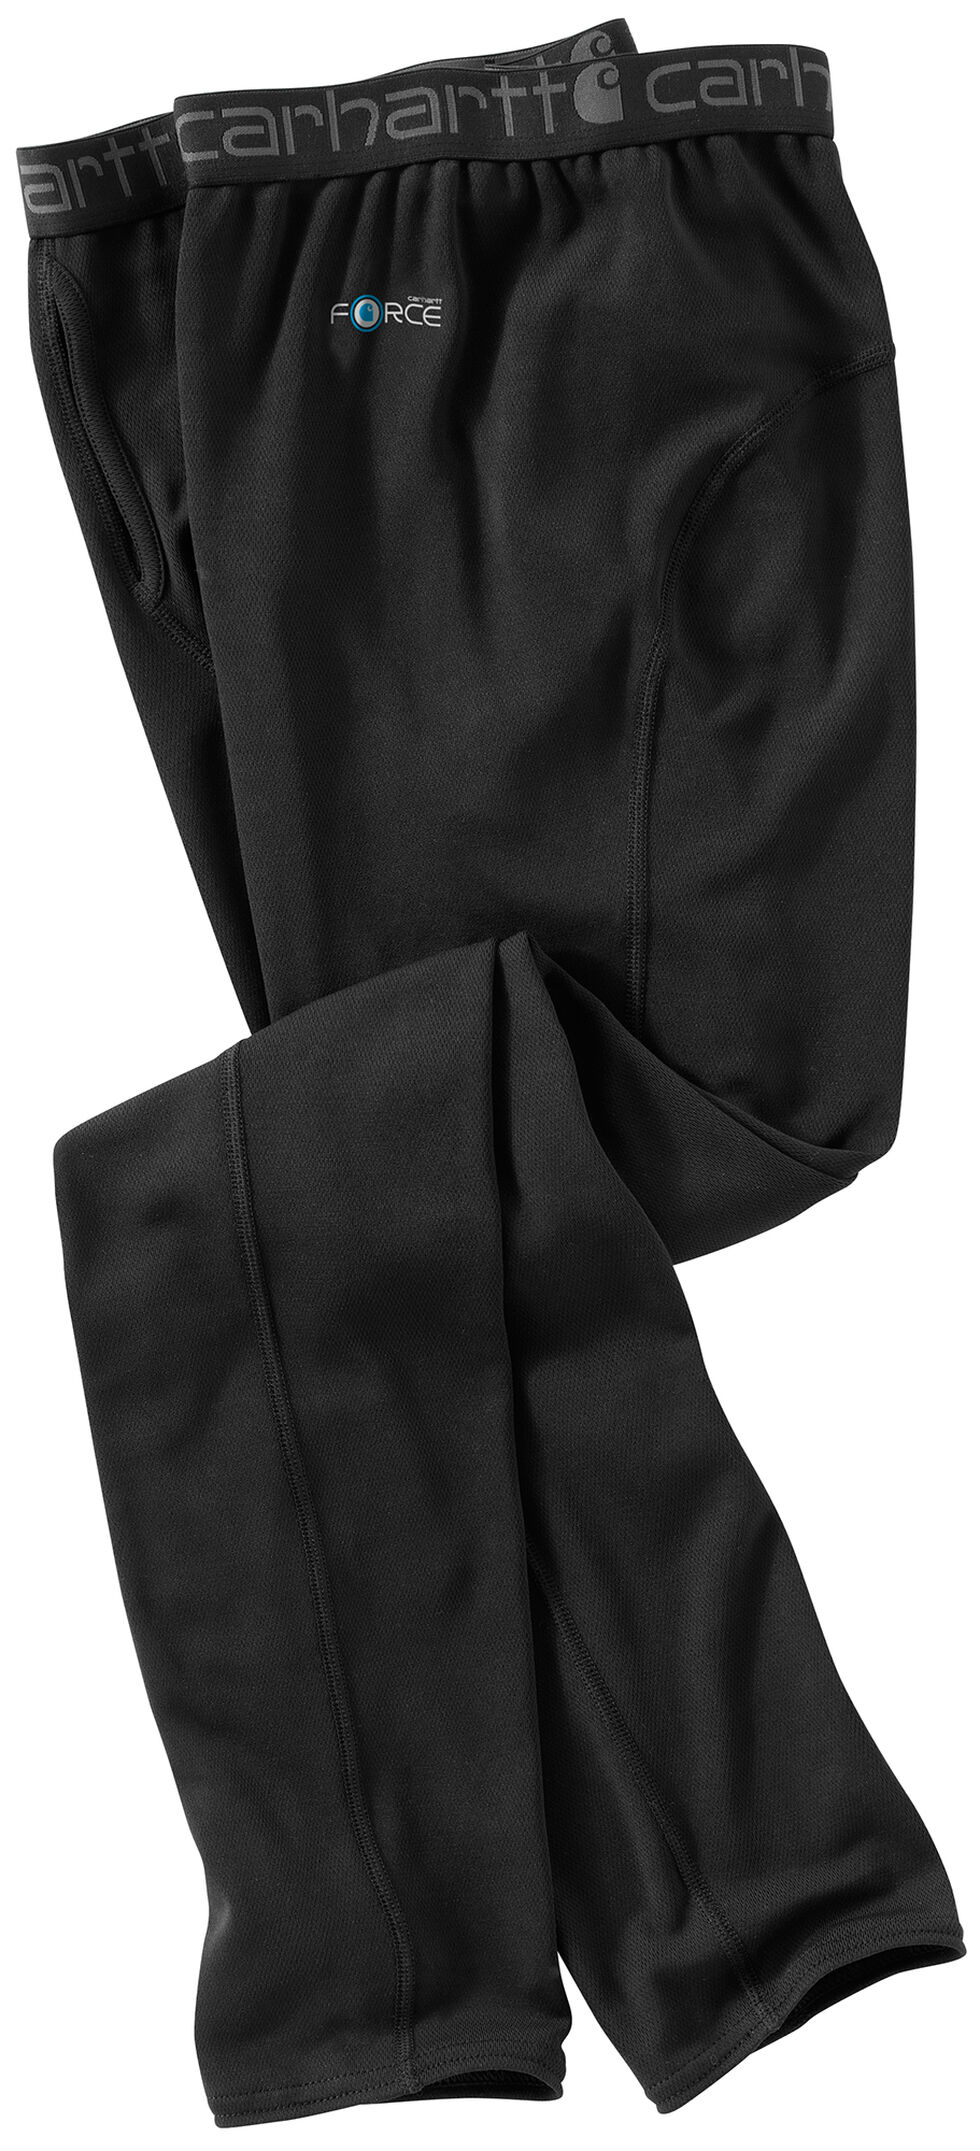 Carhartt Men's Base Force Cool Weather Bottoms, Black, hi-res